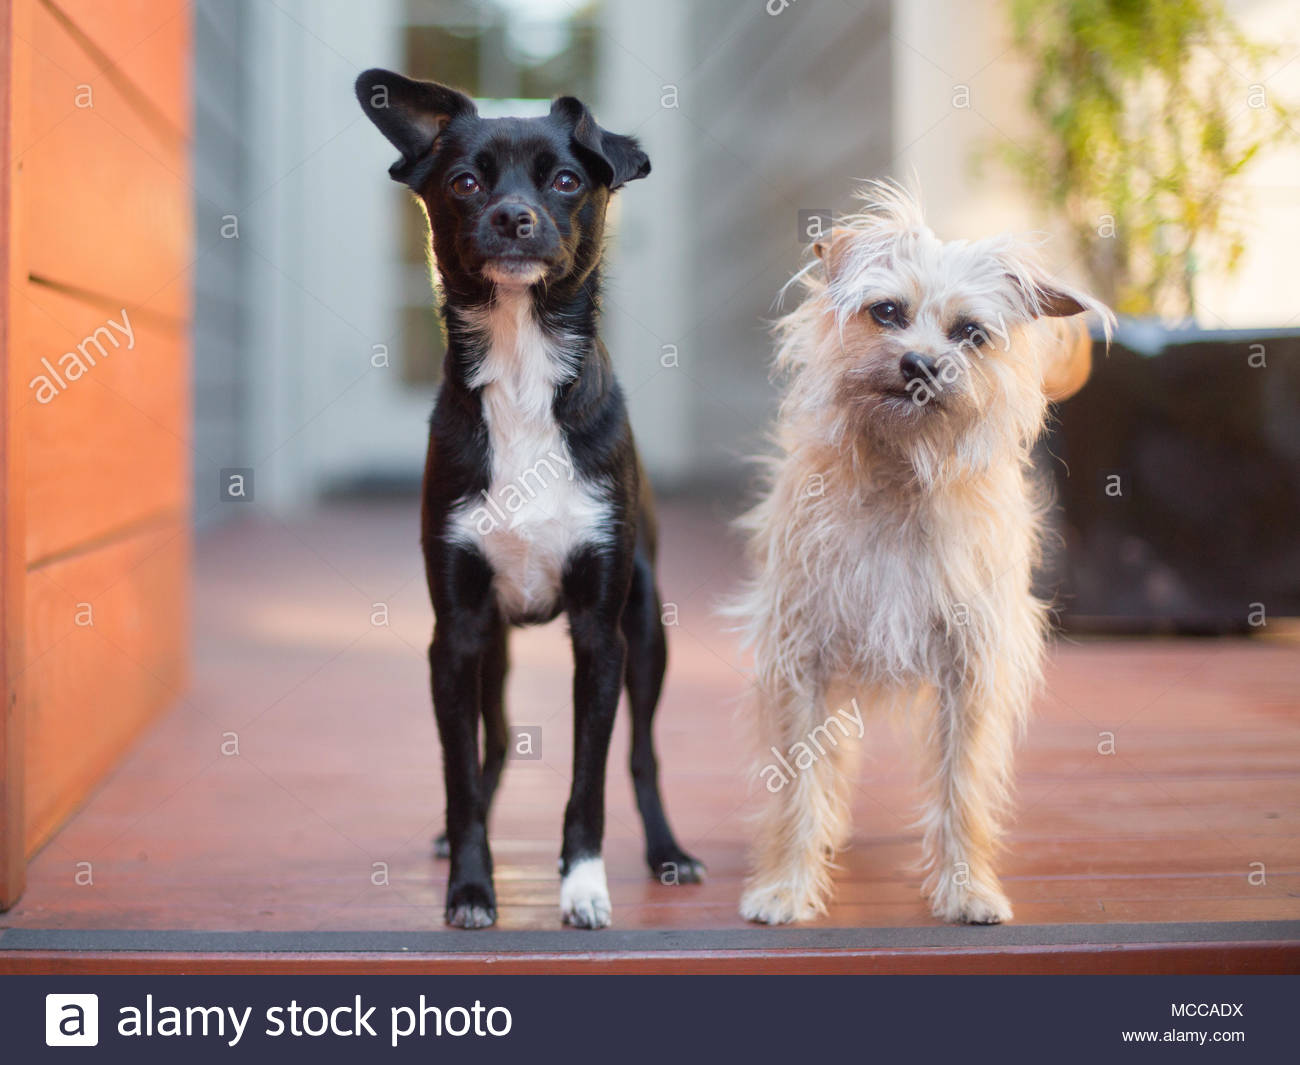 A Small Black and White Terrier Chihuahua Mix and a White Scruffy Terrier Mix Standing next to each other on wooden porch - Stock Image